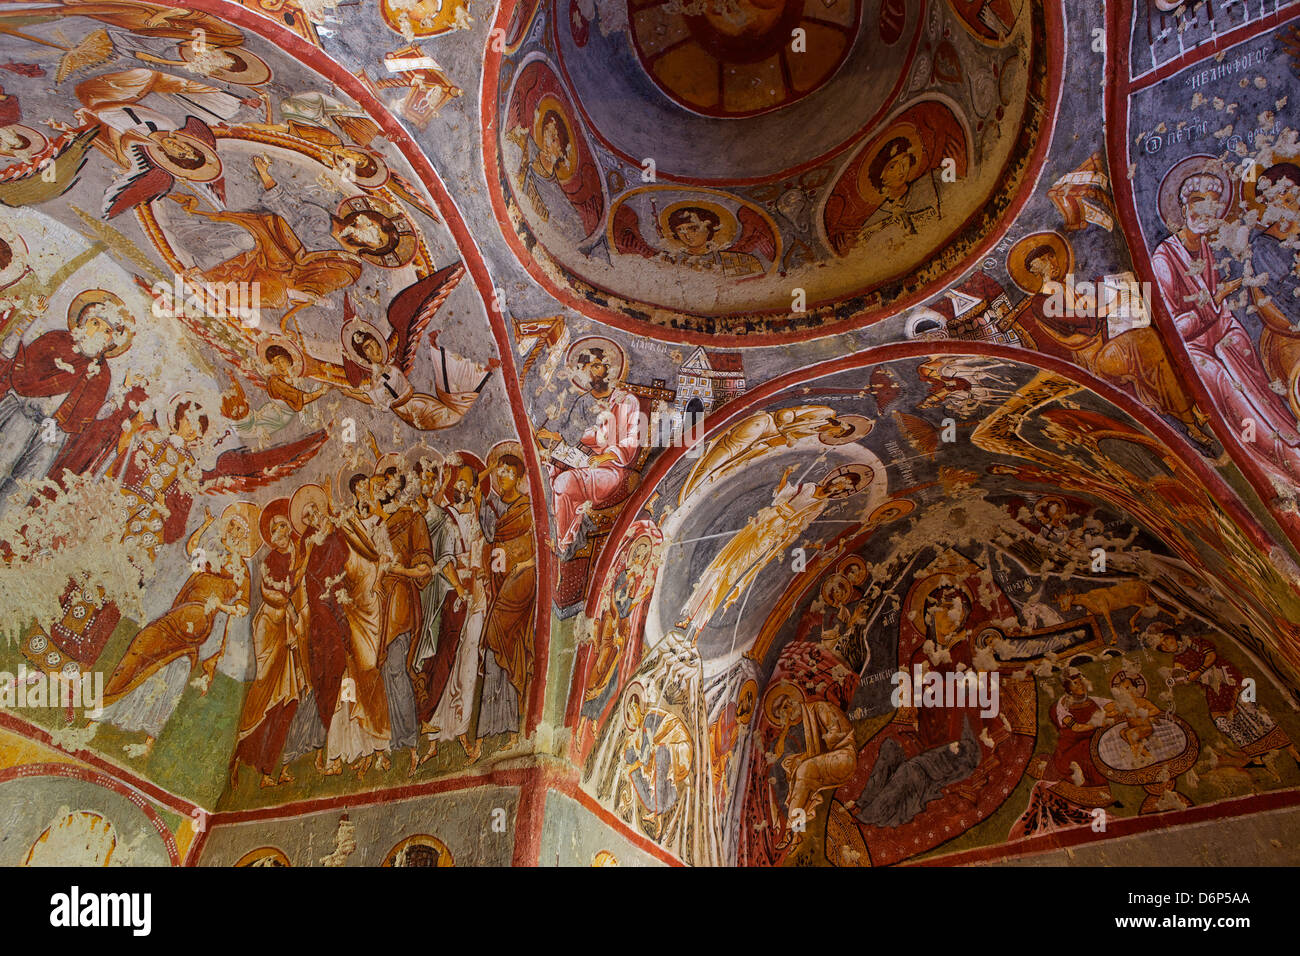 View of ceiling with fresco painting in a cave church, Goreme open air museum, Cappadocia, Anatolia, Turkey, Asia - Stock Image